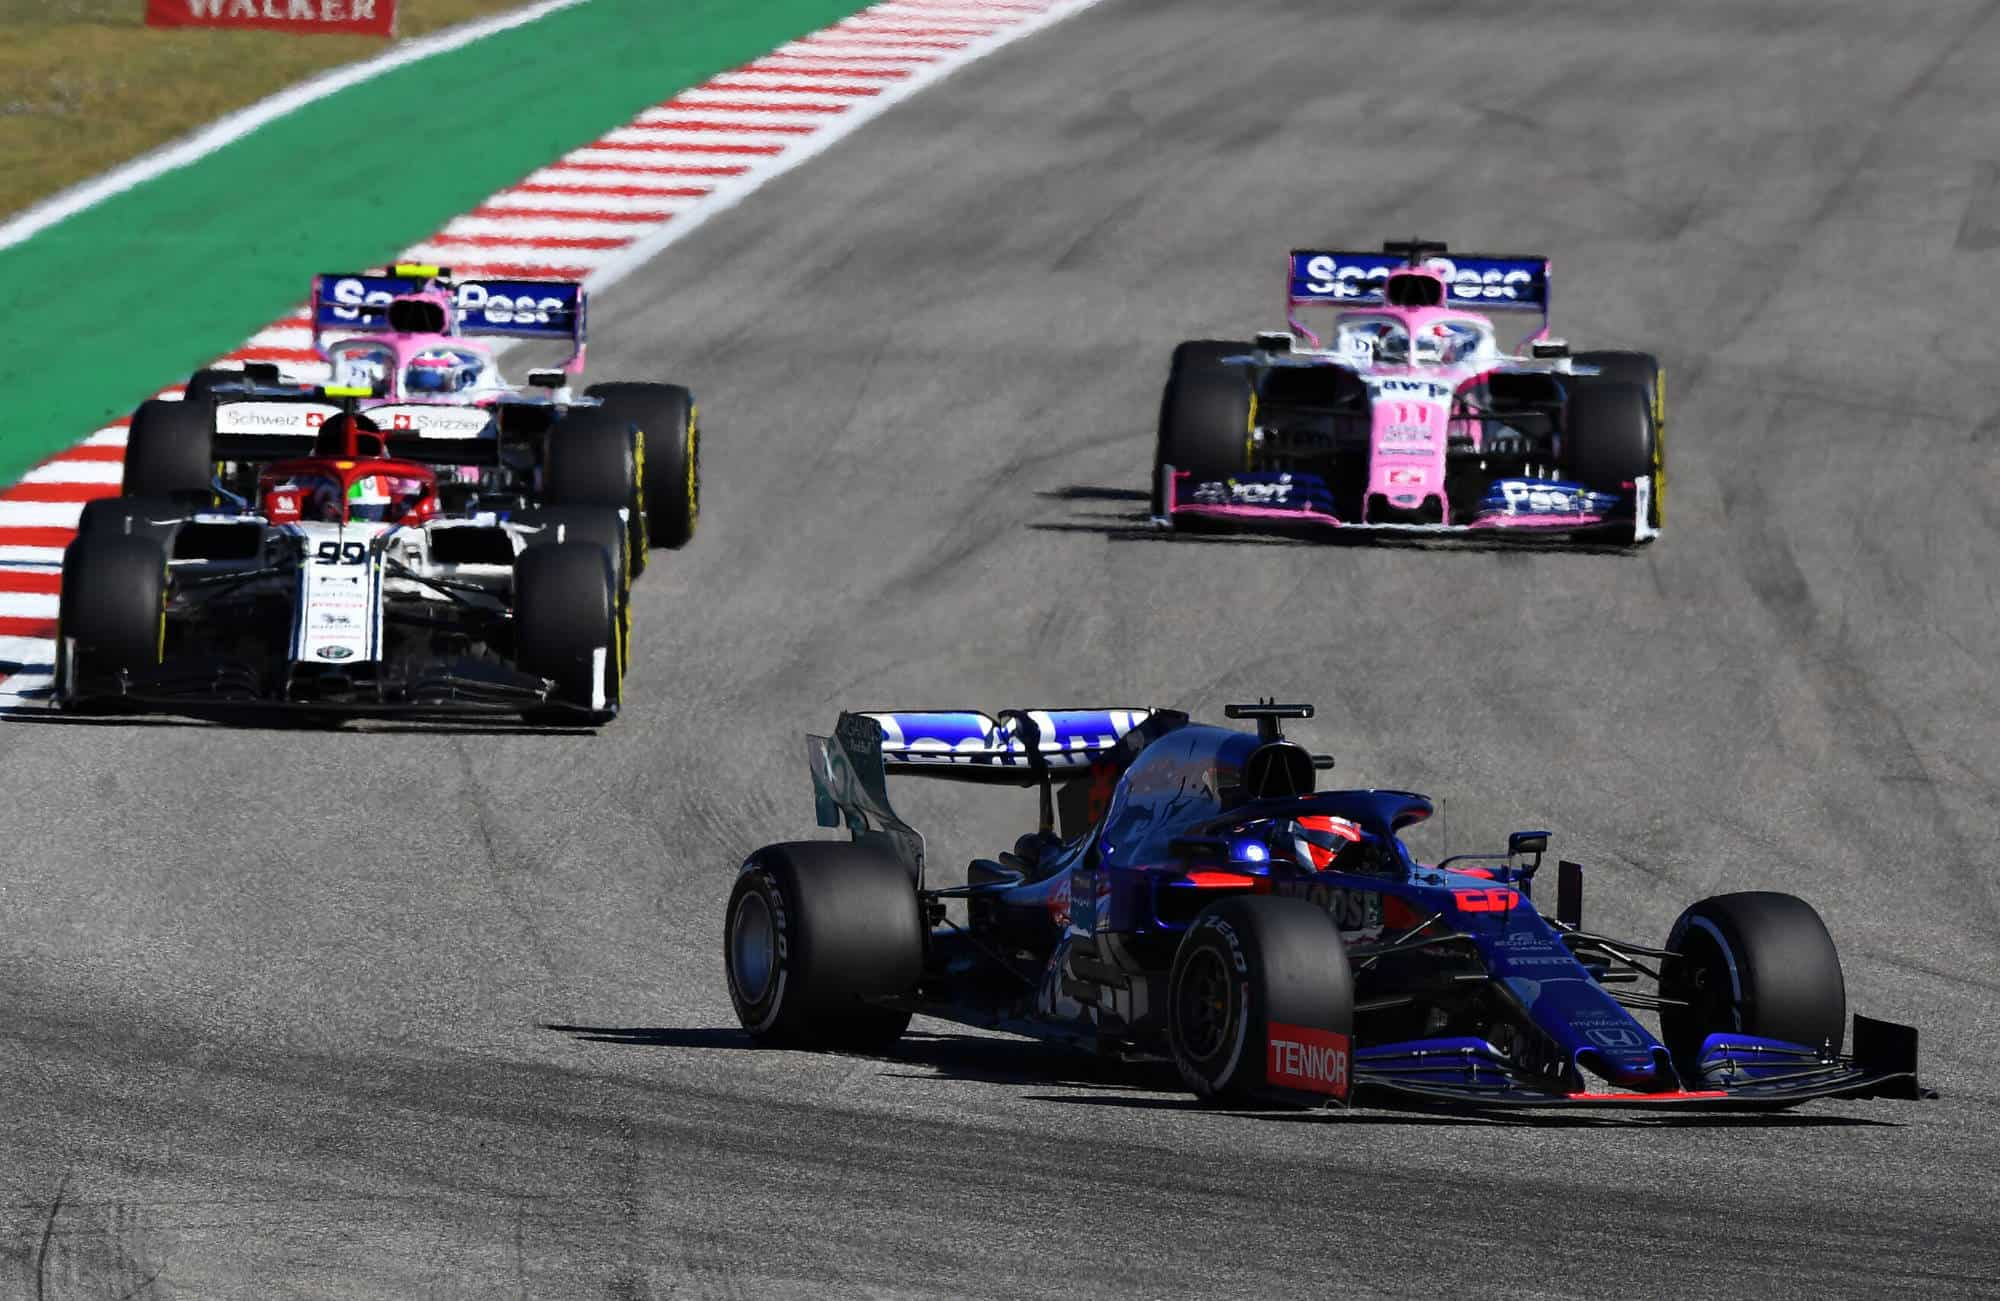 Kvyat Toro Rosso leads Giovinazzi Alfa Romeo and Stroll and Perez Racing Point USA GP Austin F1 2019 Photo Red Bull